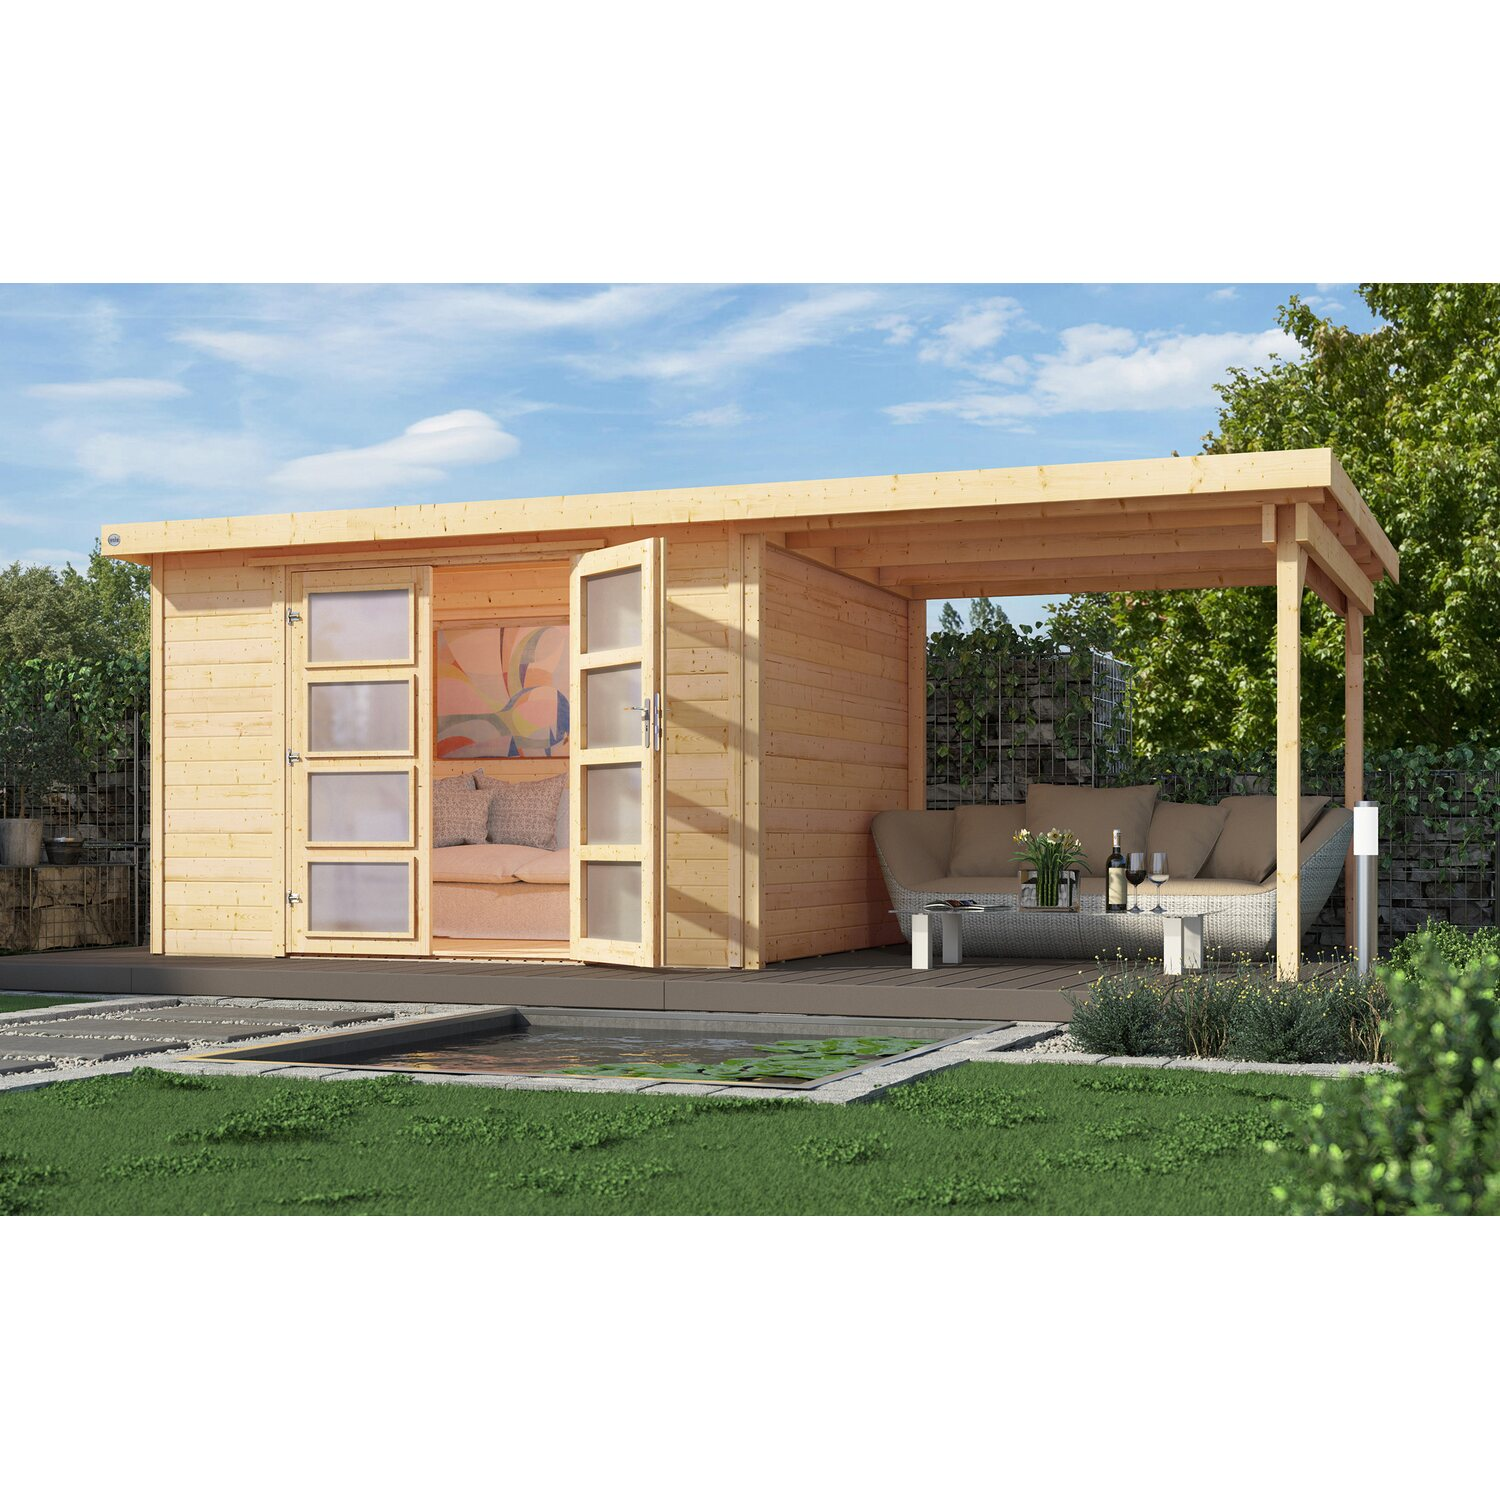 weka holz gartenhaus pesaro c natur 529 cm x 250 cm mit. Black Bedroom Furniture Sets. Home Design Ideas